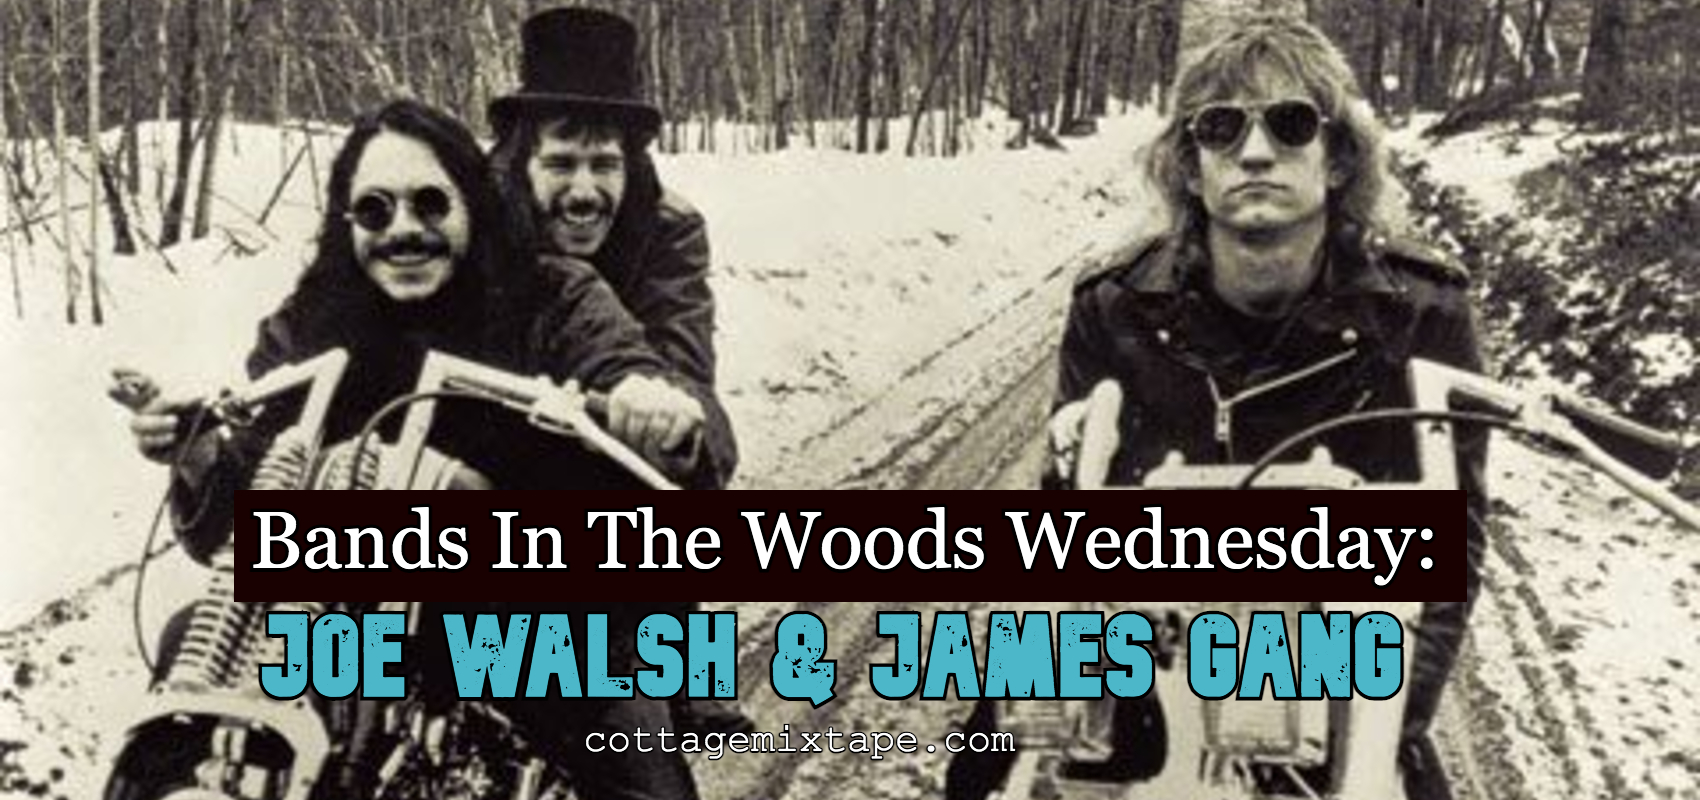 Black and white photo of James Gang (featuring Joe Walsh) in a snowy wooded area on motorcycles.